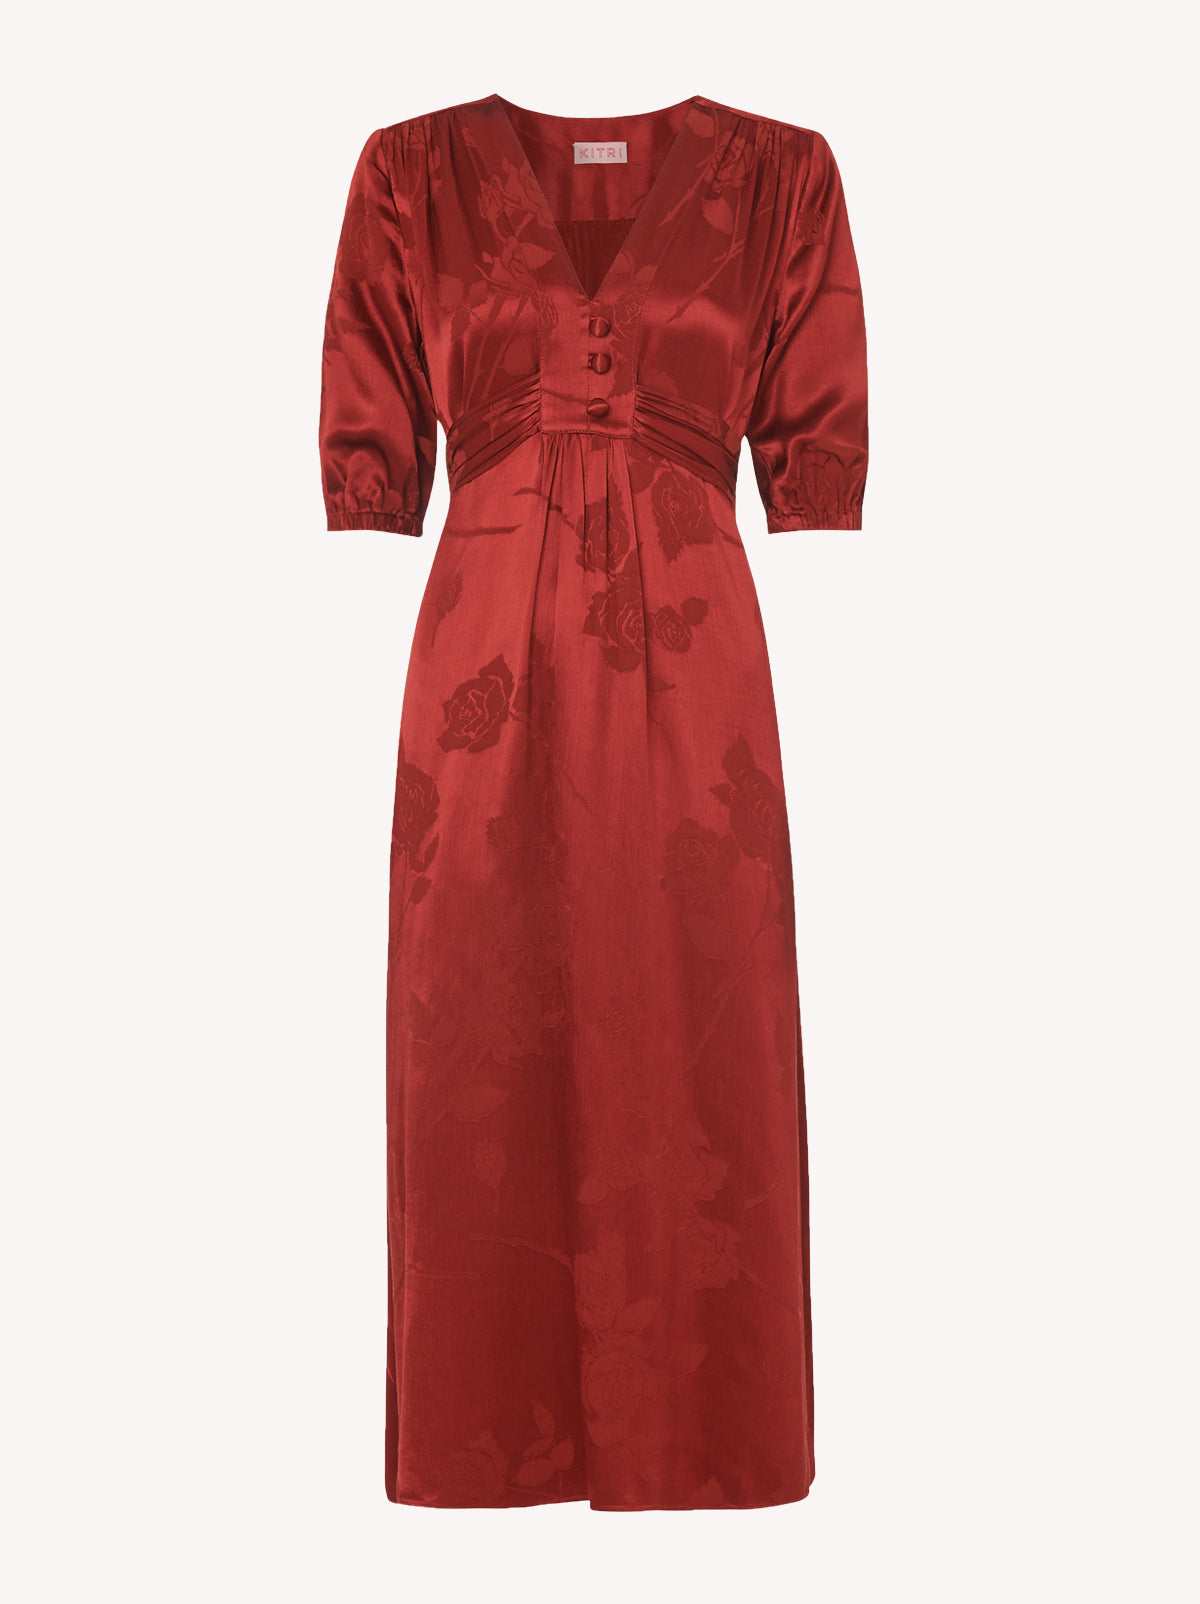 Minka Rust Red Jacquard Tea Dress by KITRI Studio